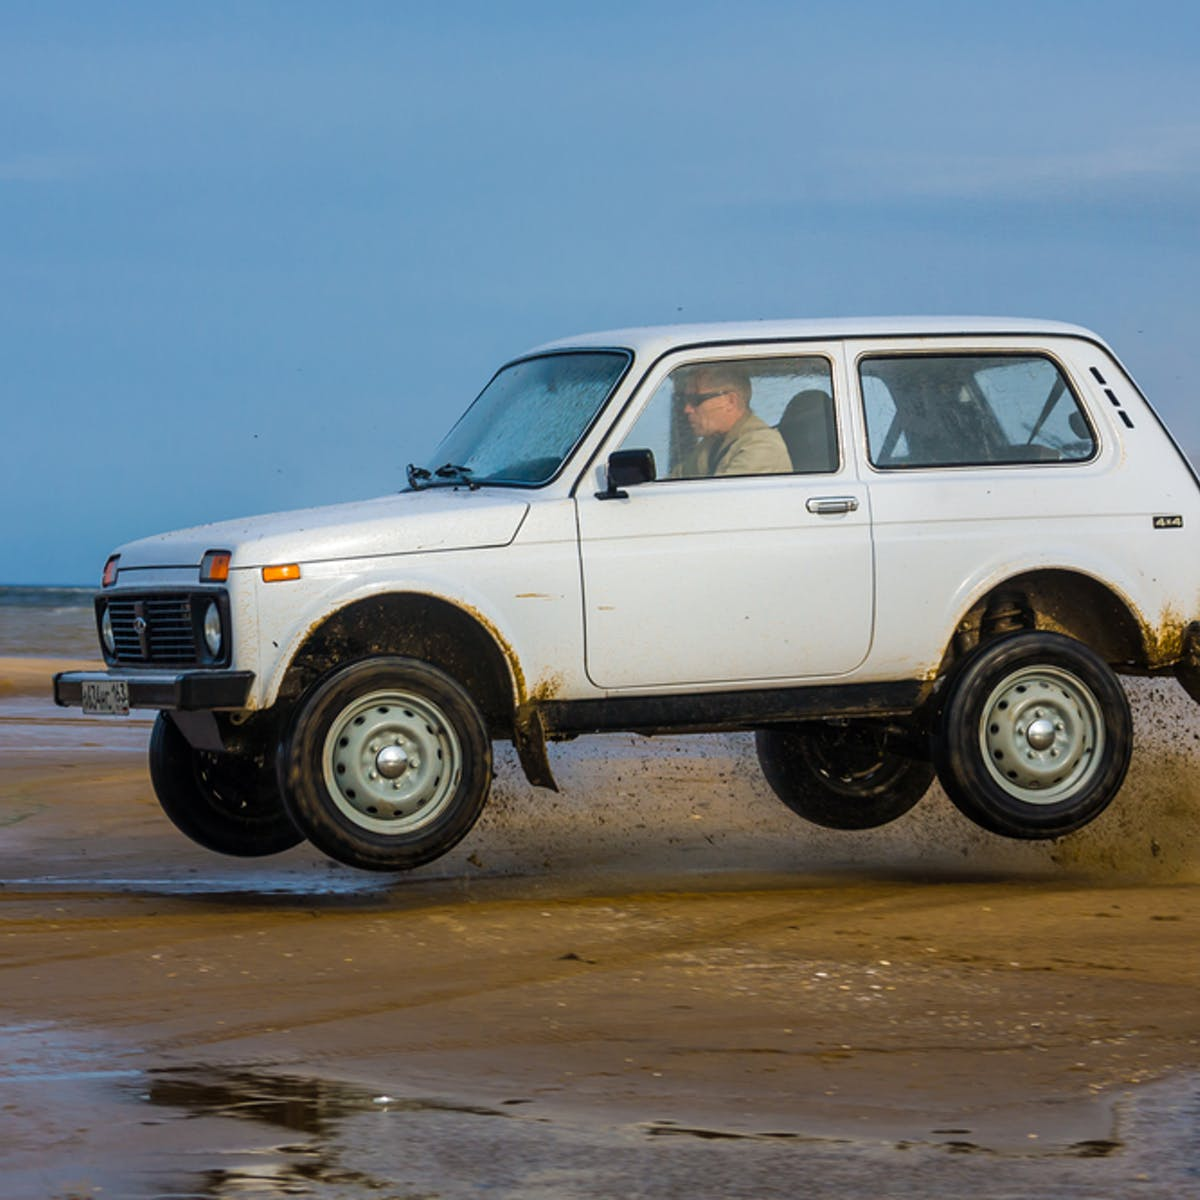 How A Rugged Soviet Relic Became One Of The Car Industry S Most Iconic Survivors